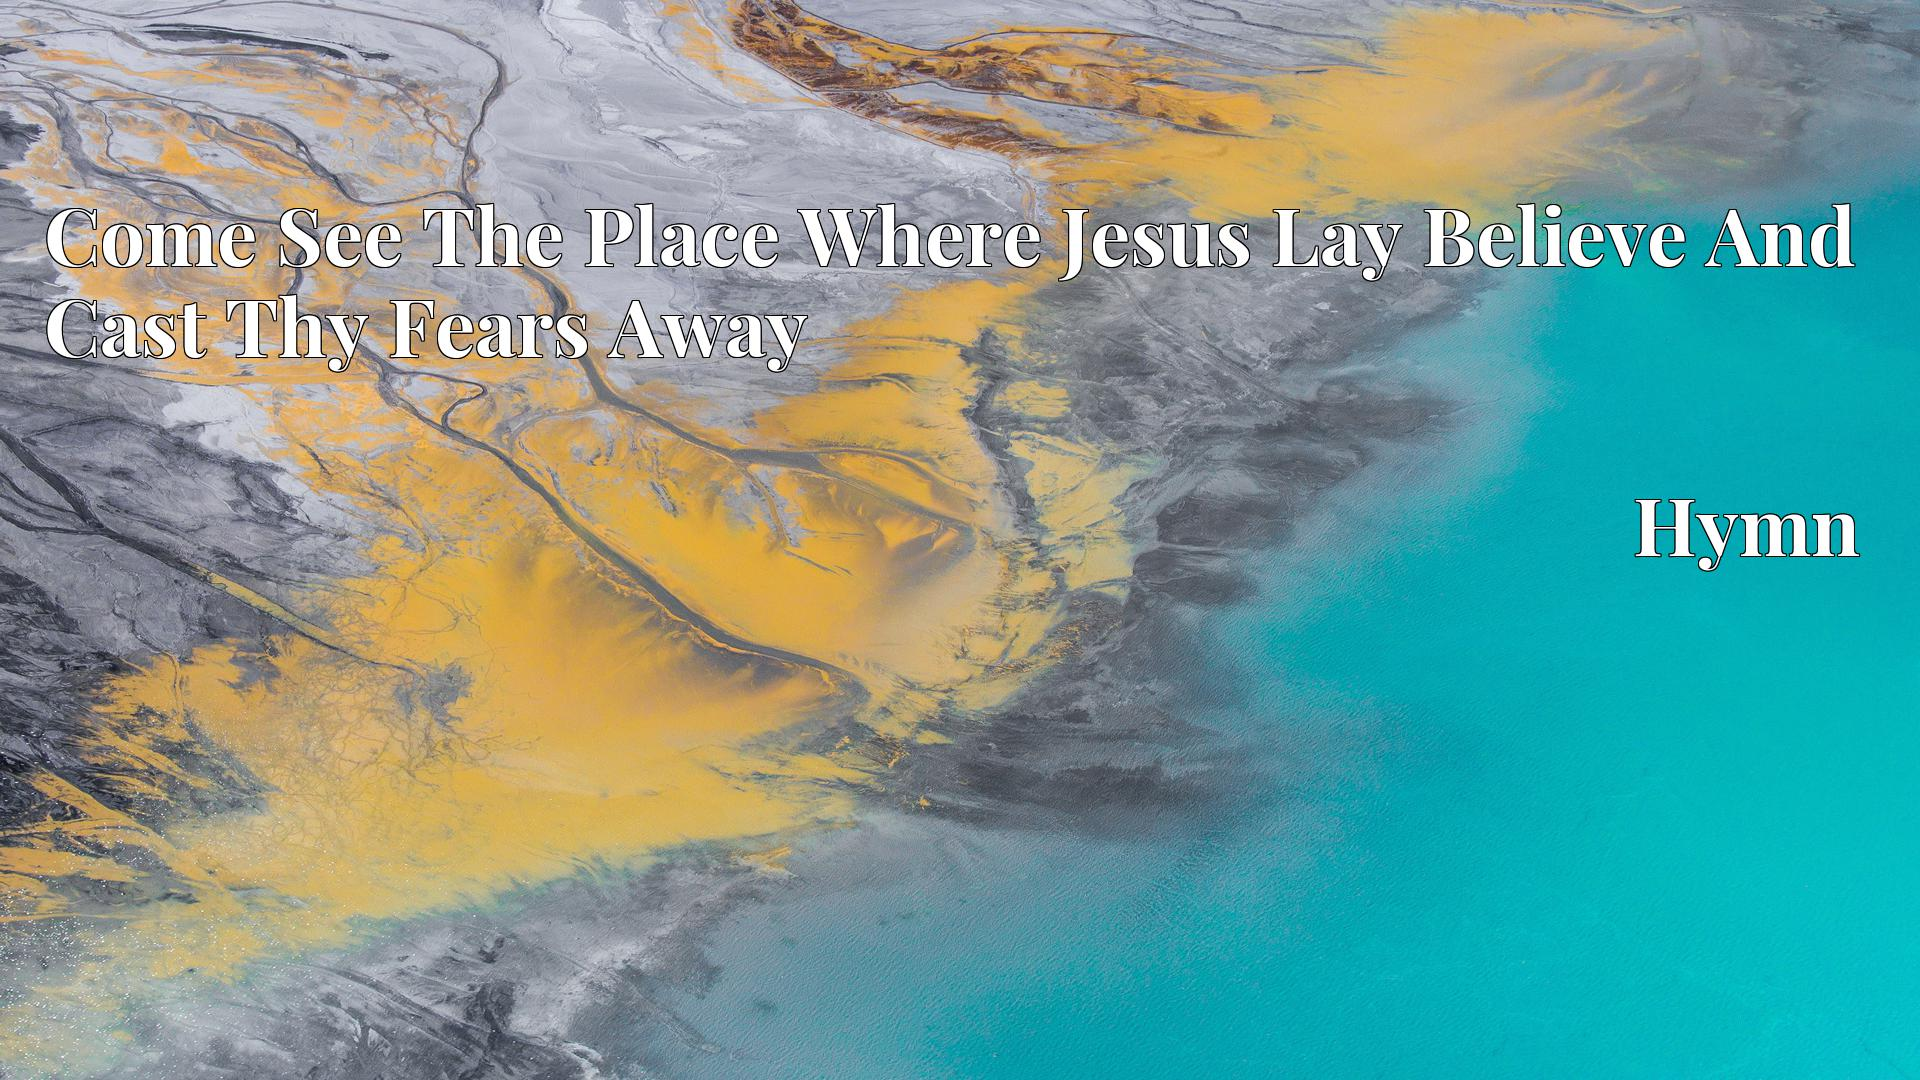 Come See The Place Where Jesus Lay Believe And Cast Thy Fears Away - Hymn